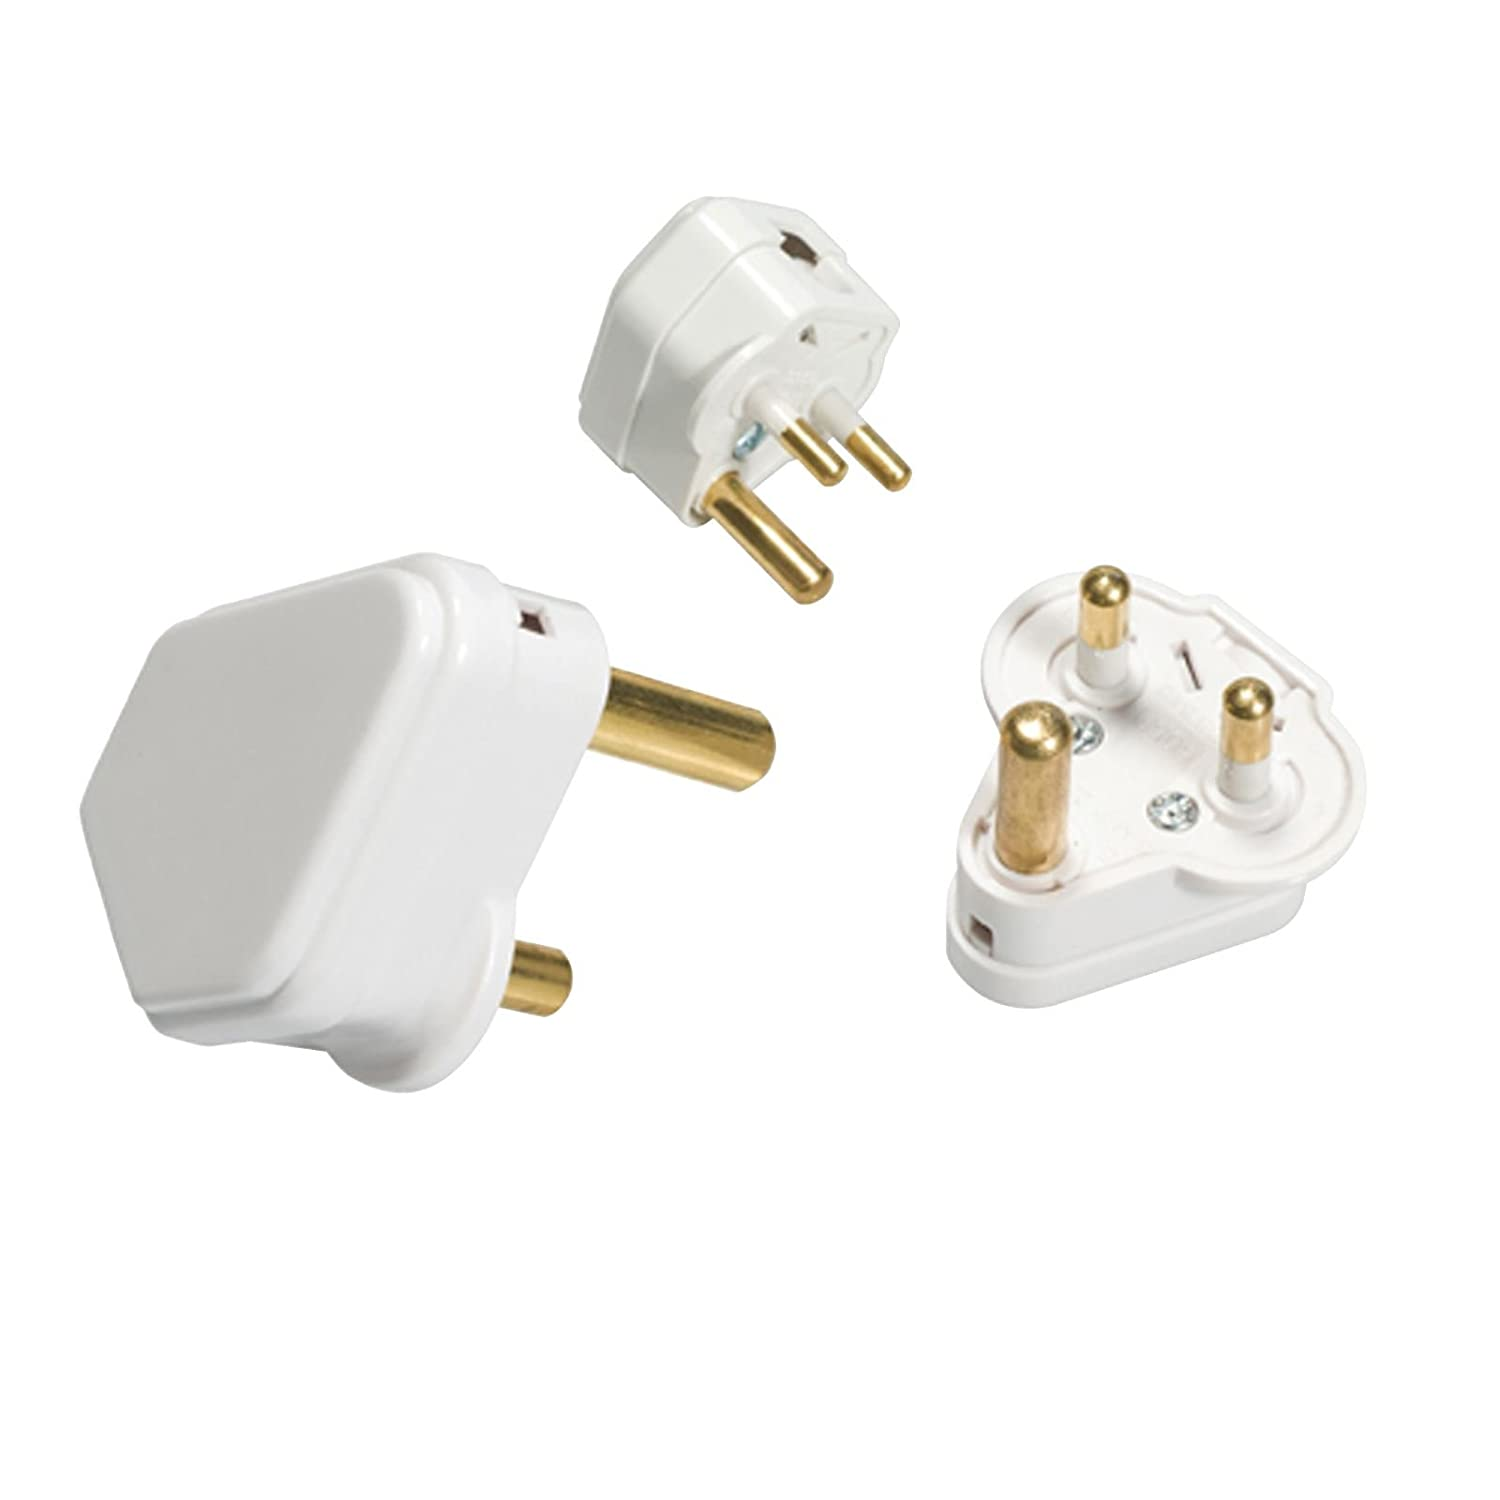 Knightsbridge Plug Britain with Round Pins A White 2 MLA